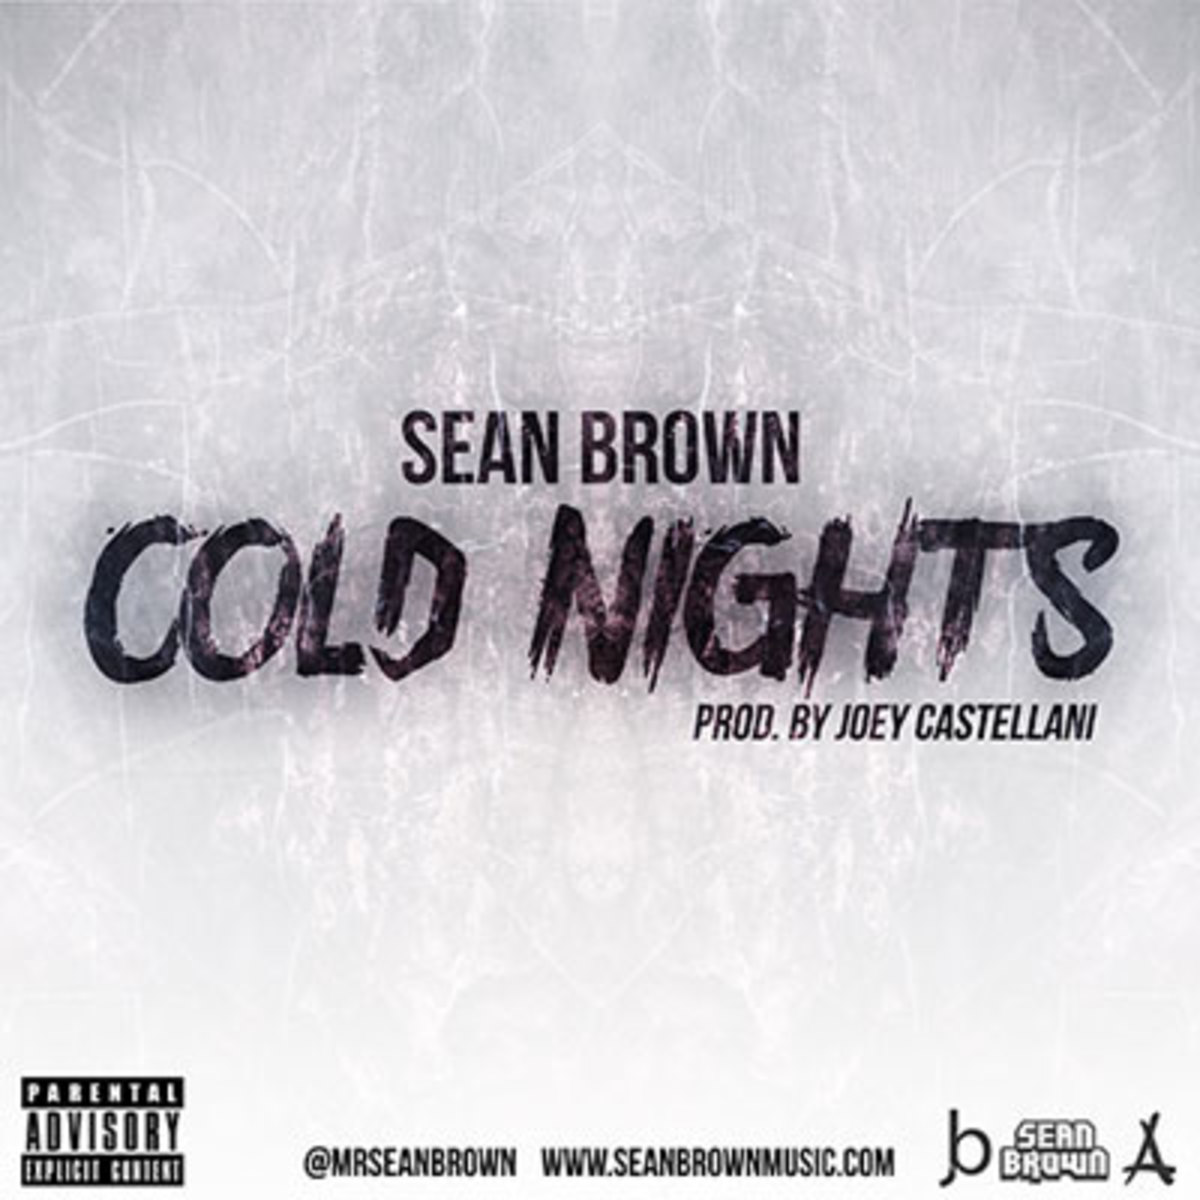 seanbrown-coldnights.jpg